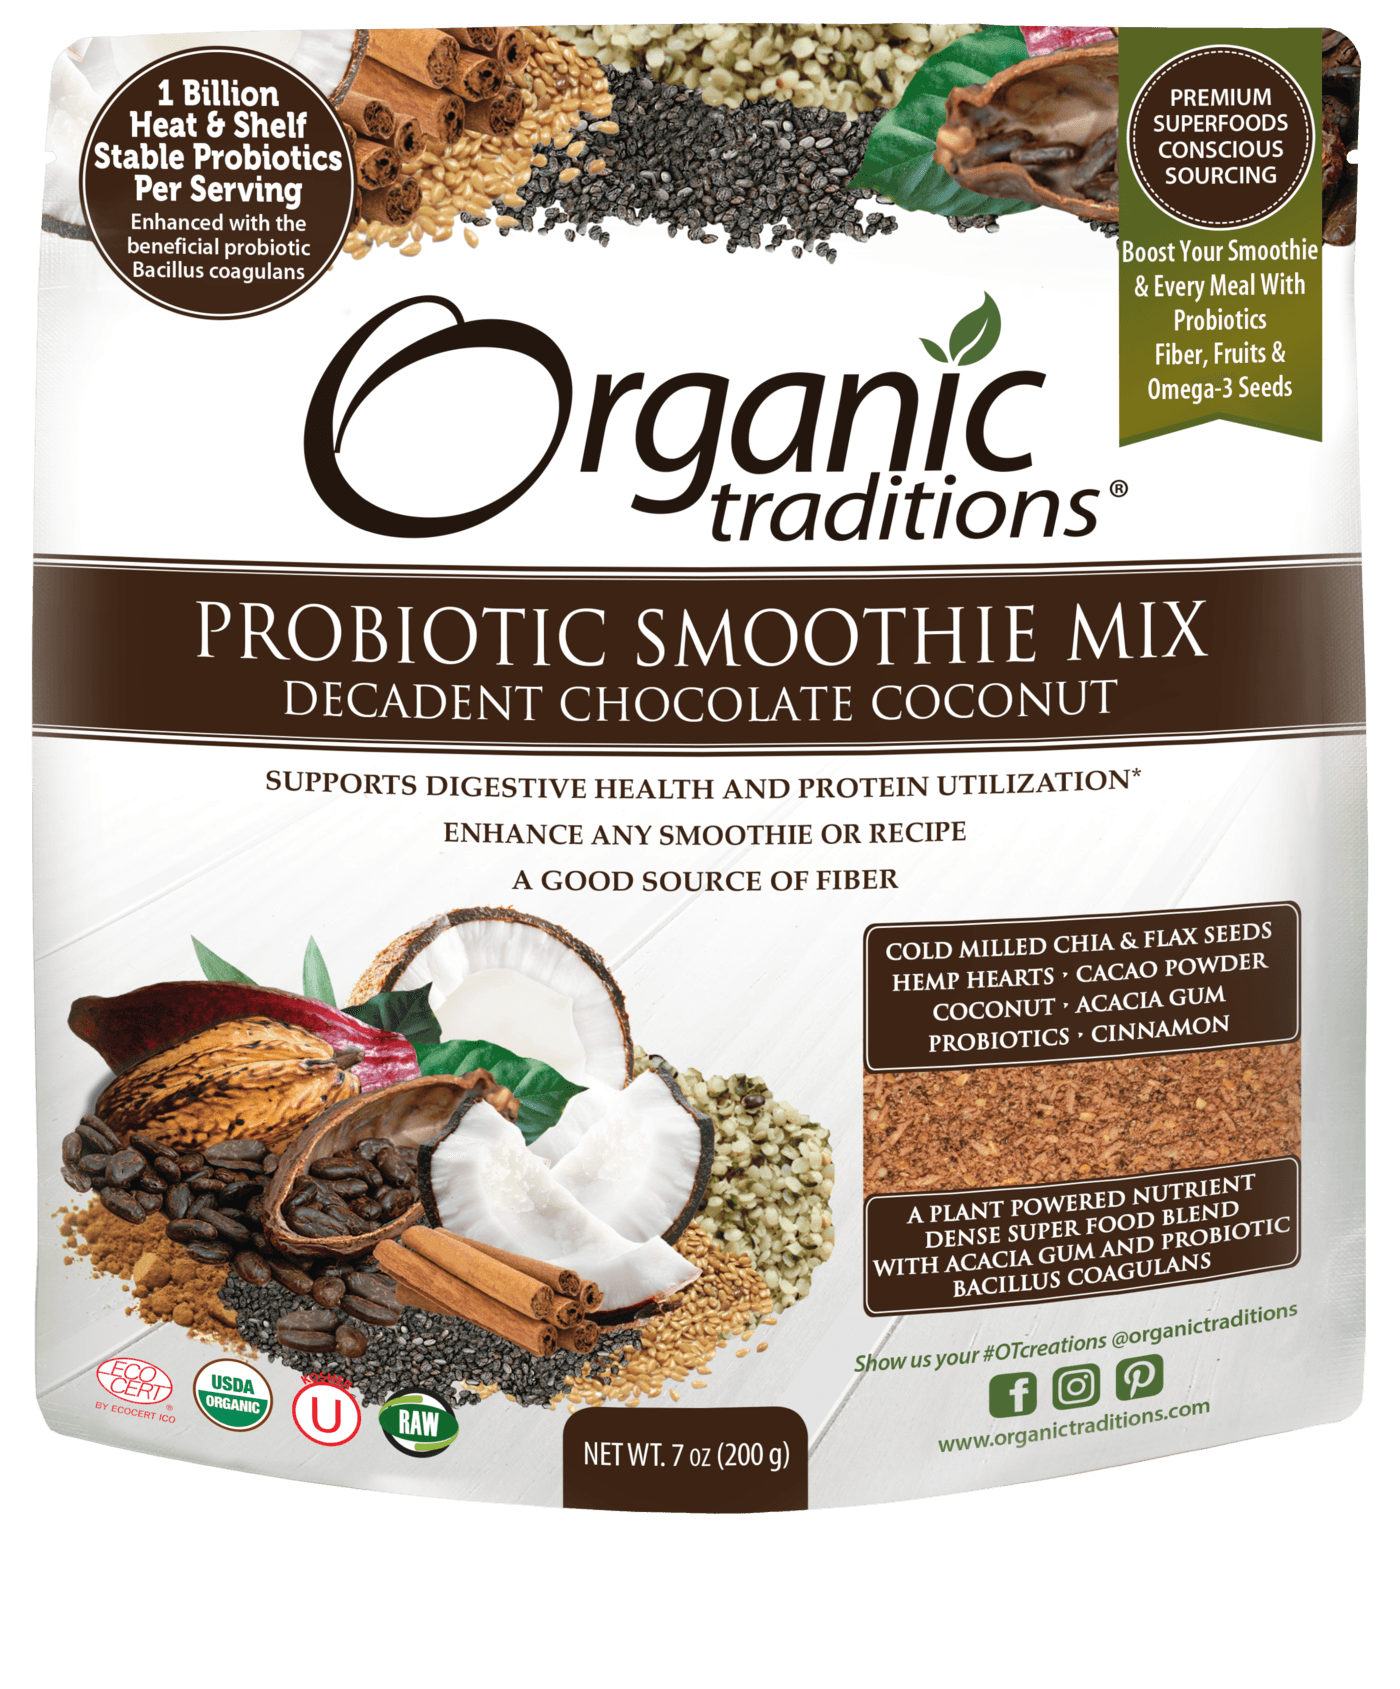 Supplements - Organic Traditions - Probiotic Smoothie Mix (Decadent Chocolate Coconut), 200g